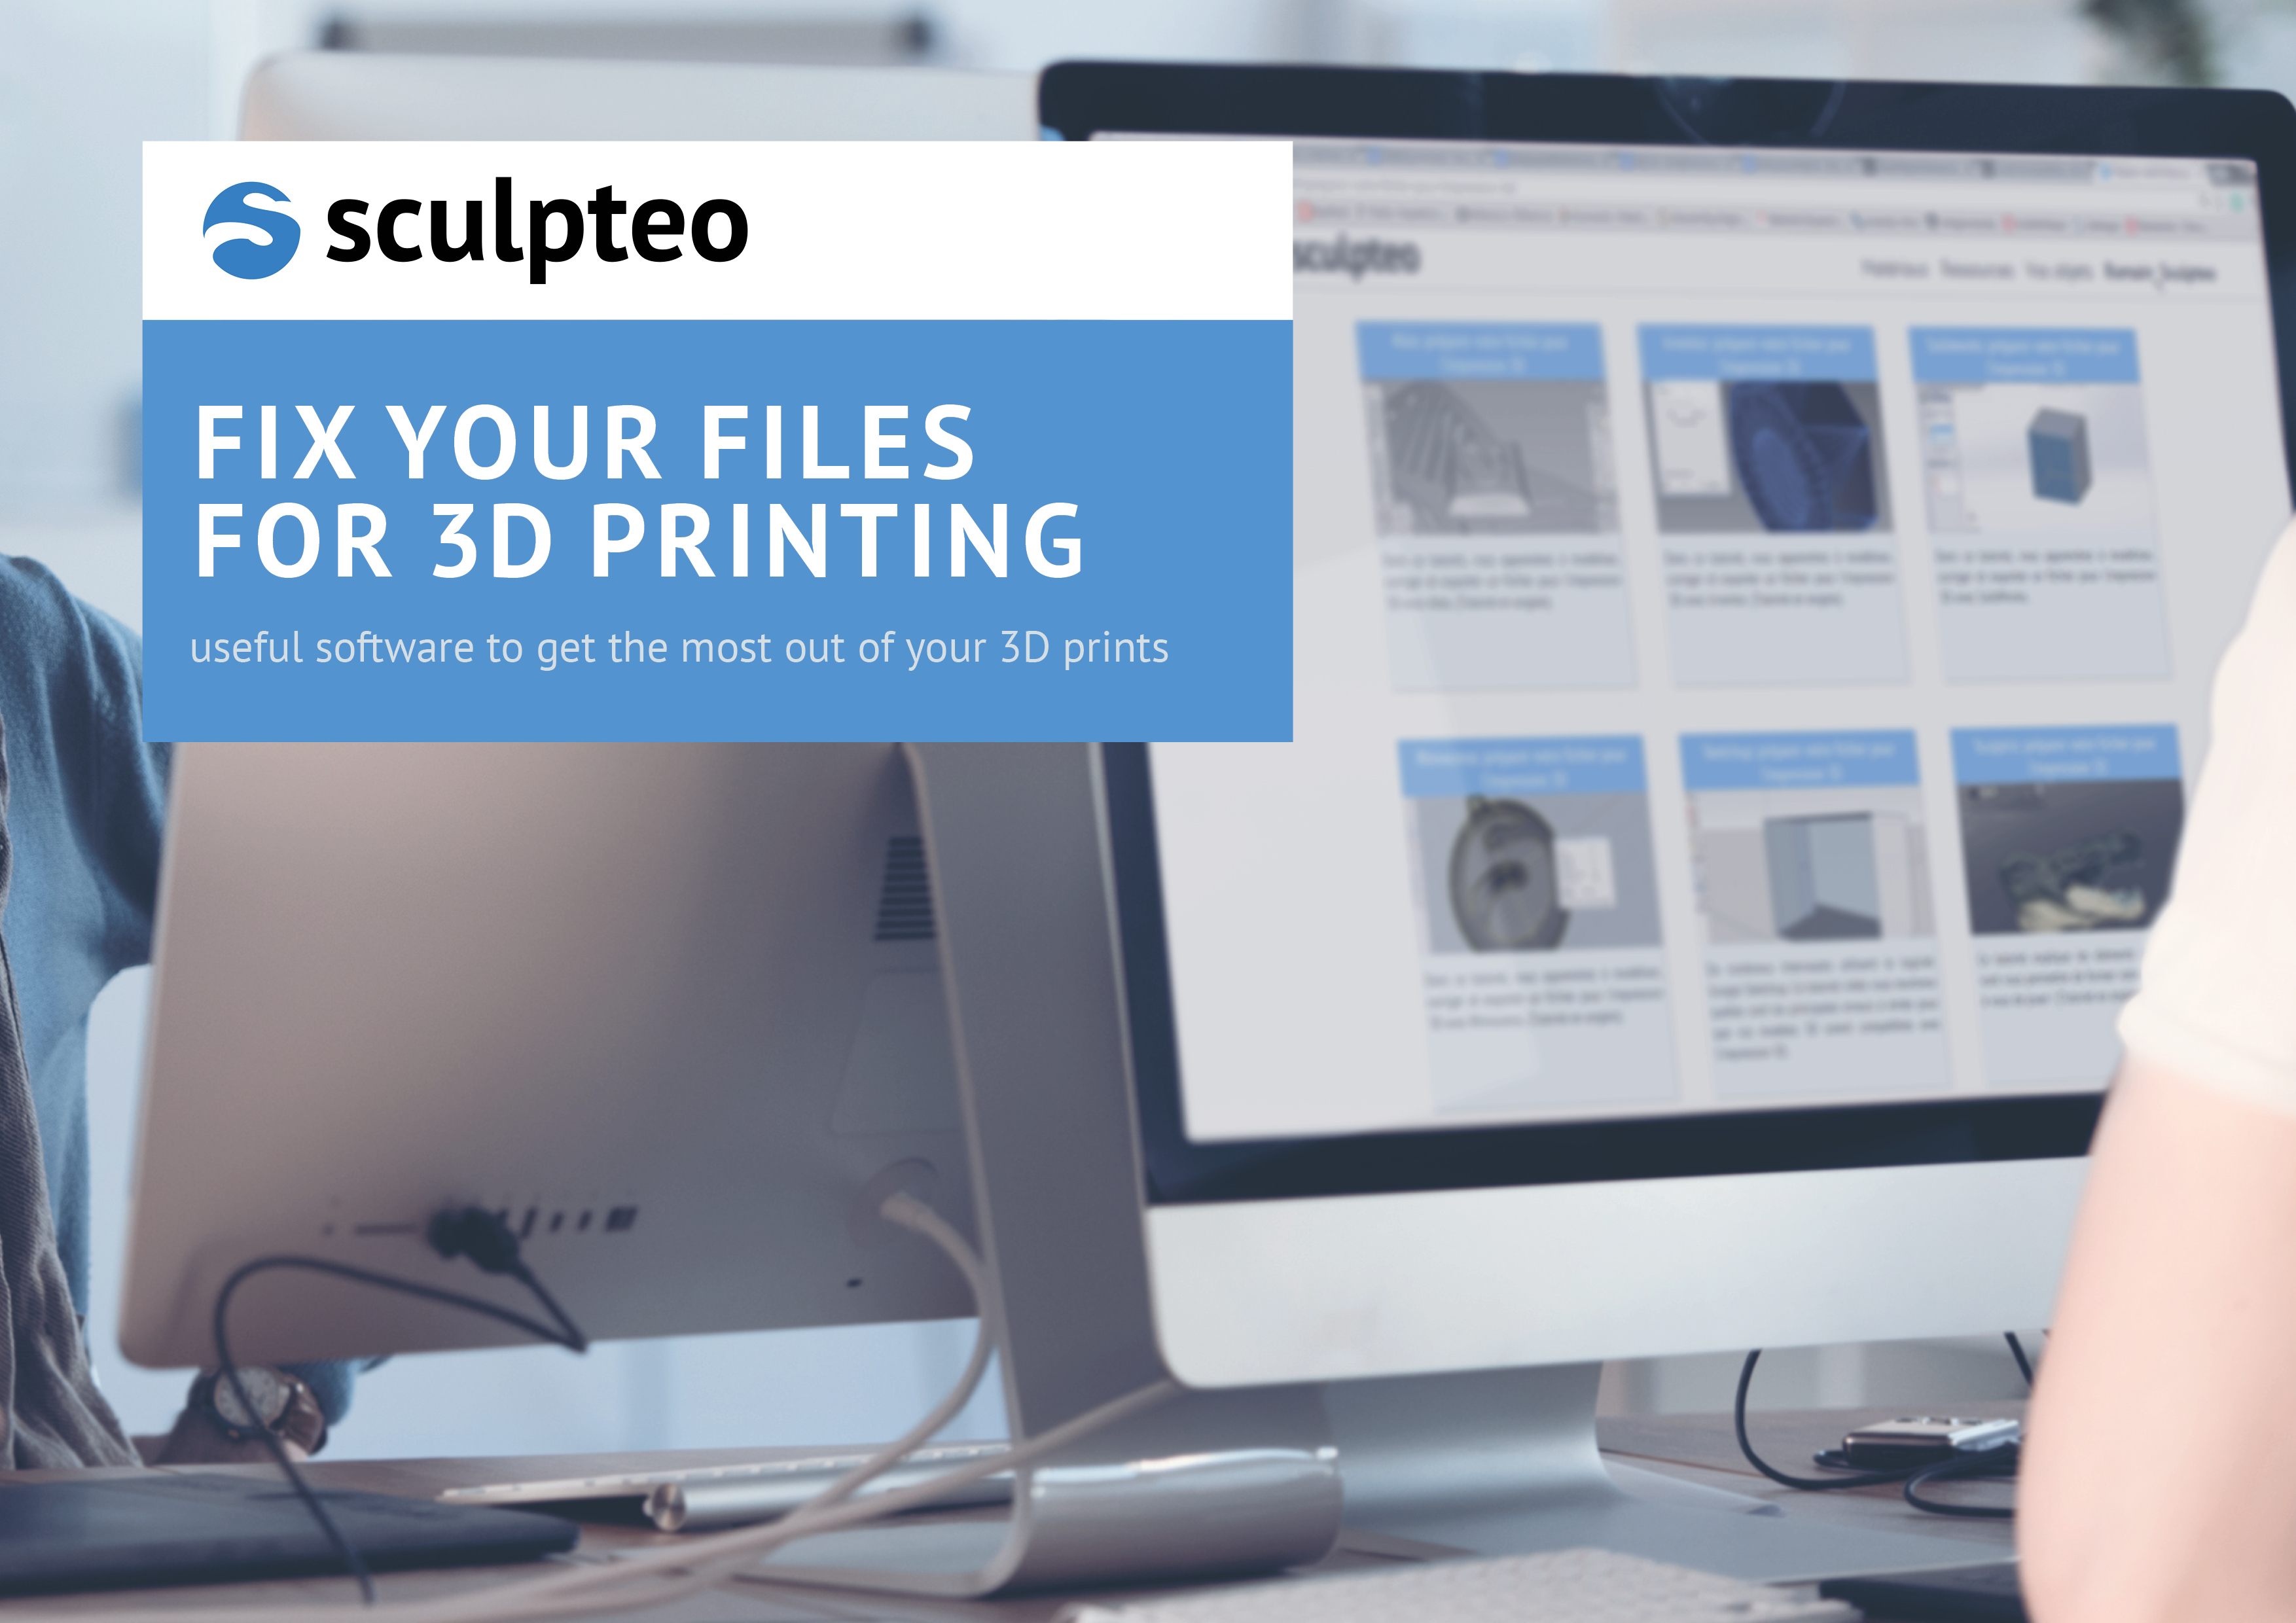 Fix Your Files for 3D Printing